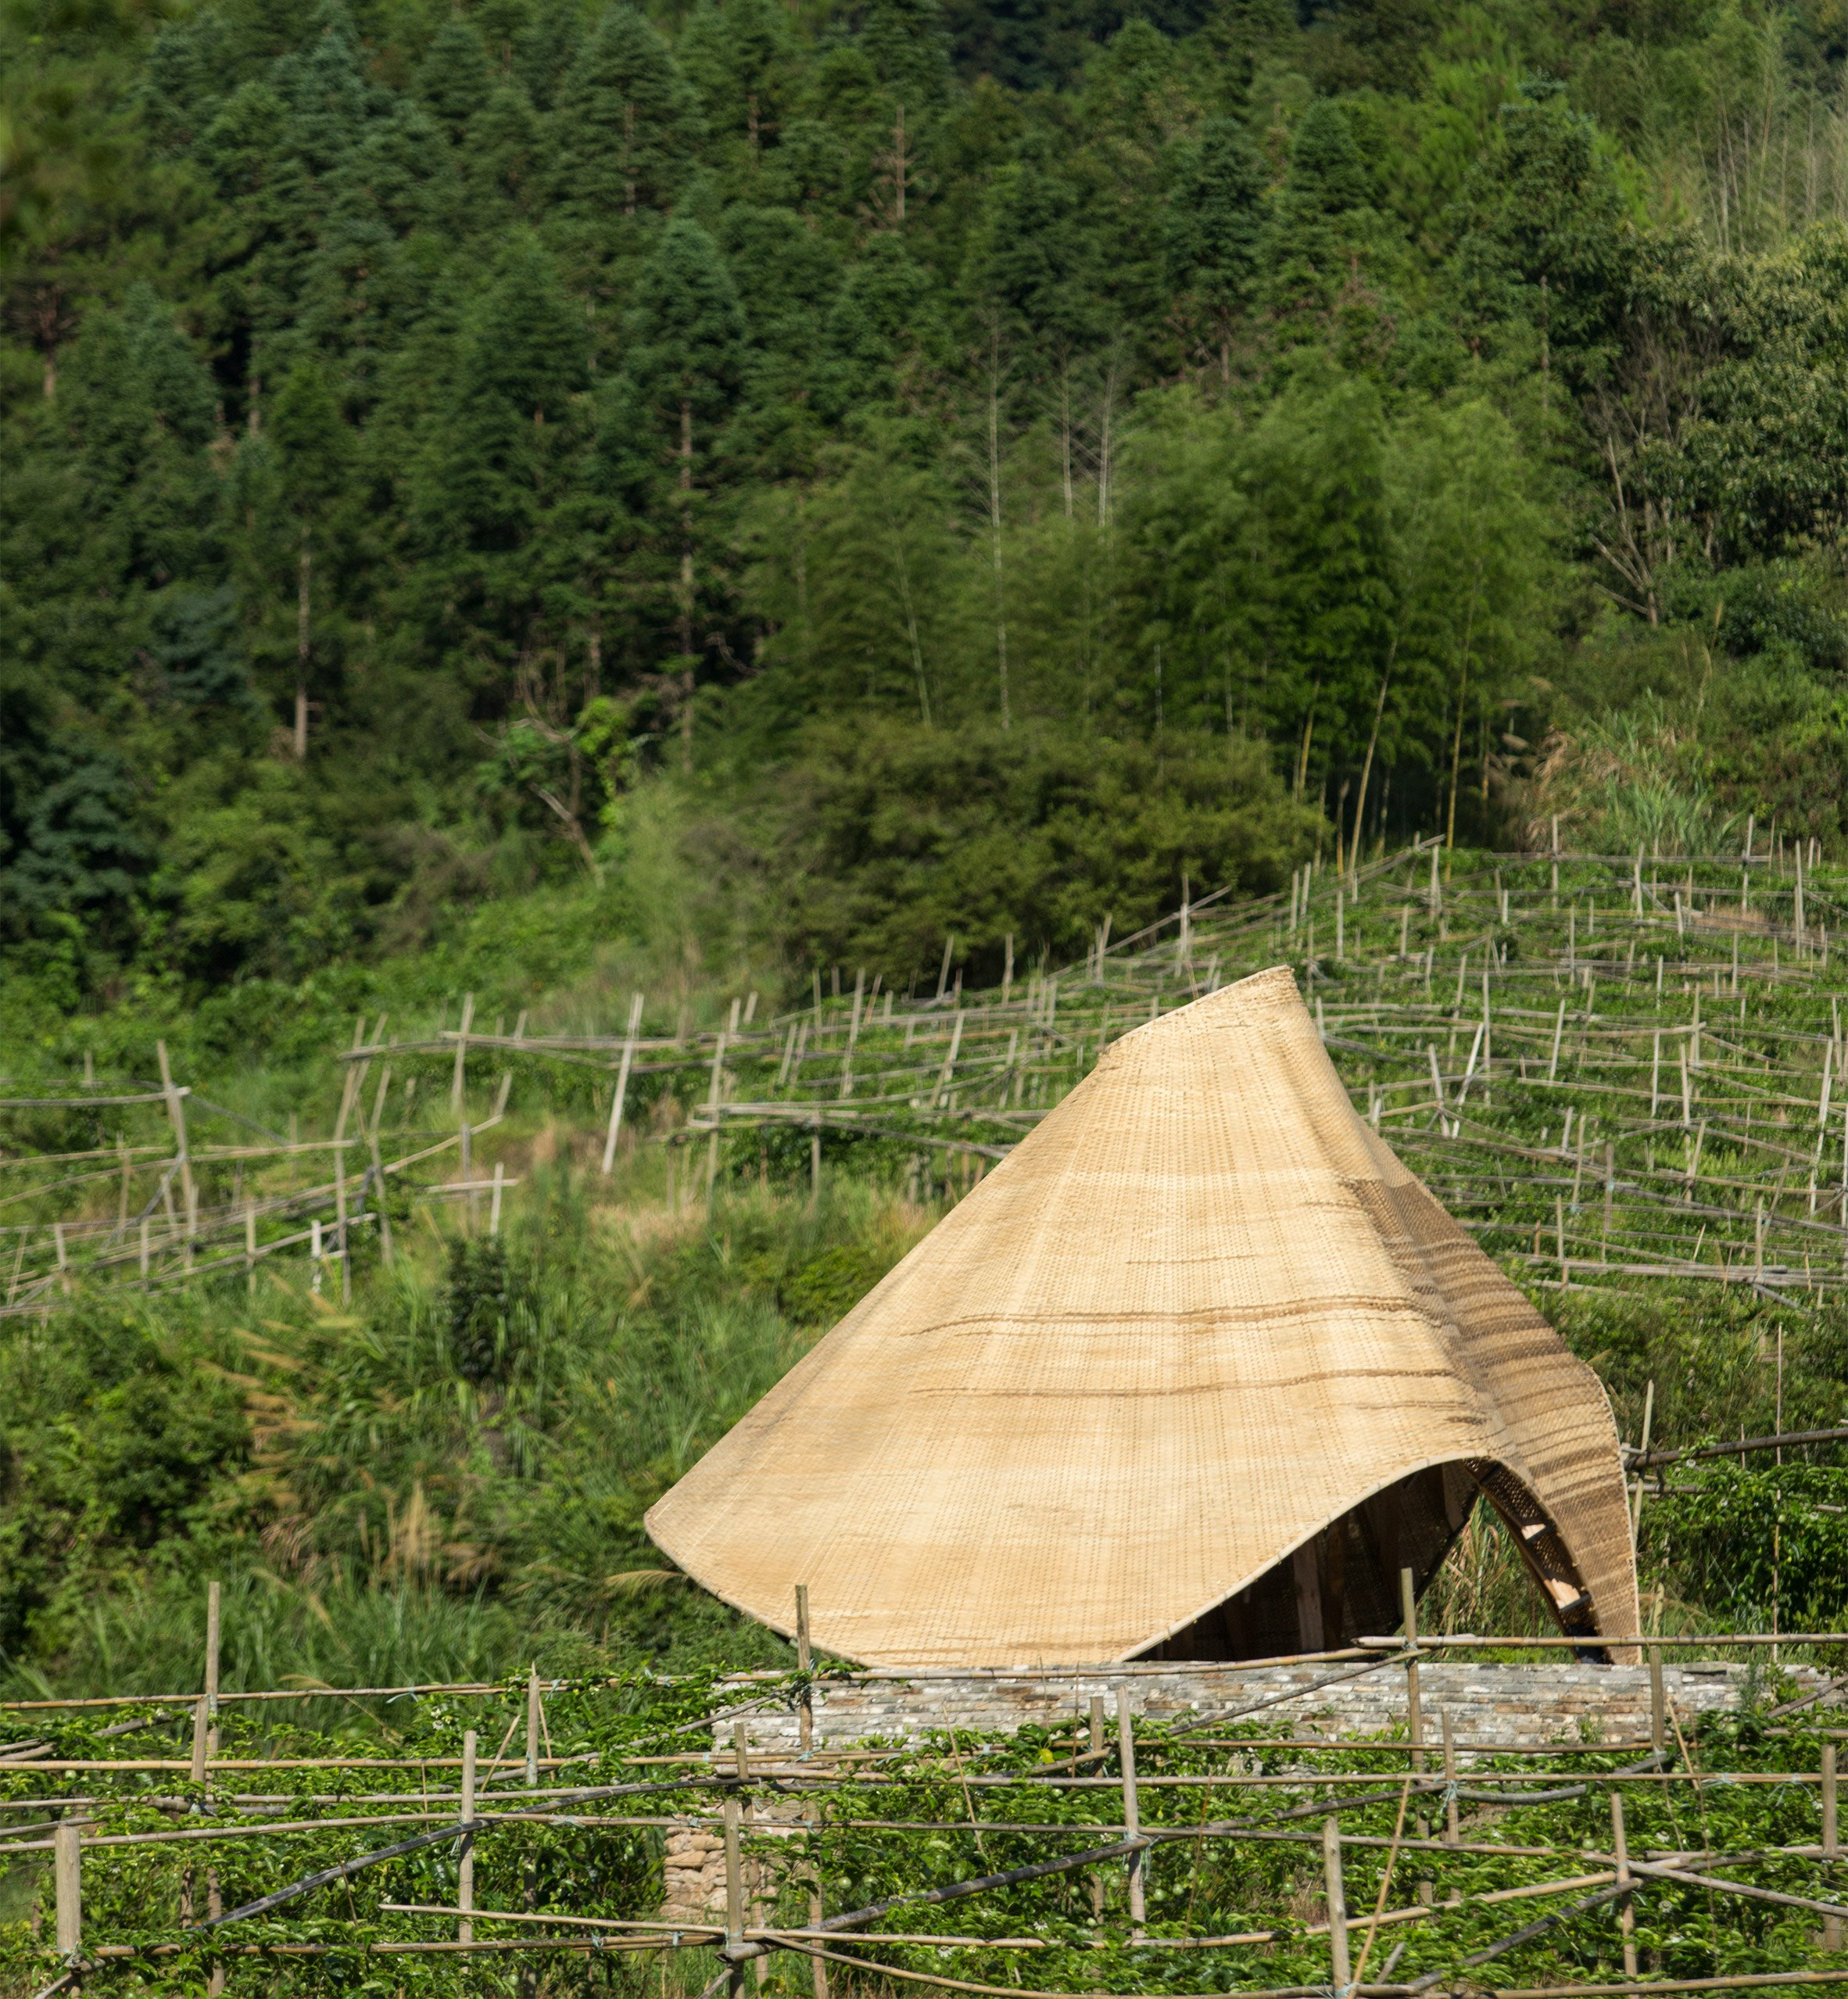 """Students """"reinvigorate"""" traditional bamboo weaving with digital technologies for Sun Room pavilion"""